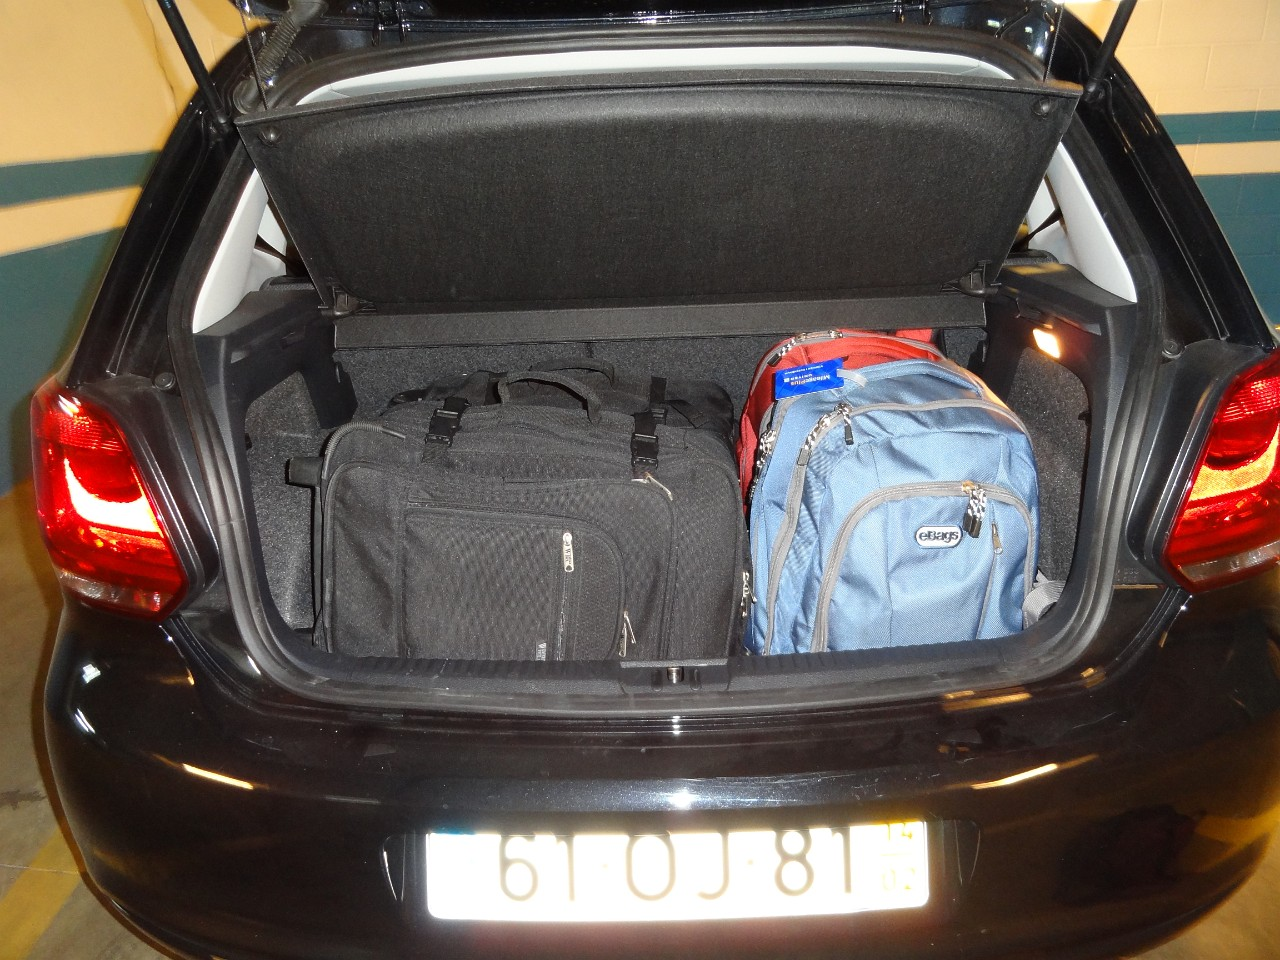 VW Polo trunk space - enough for 2 carry ons and 2 big laptop bags